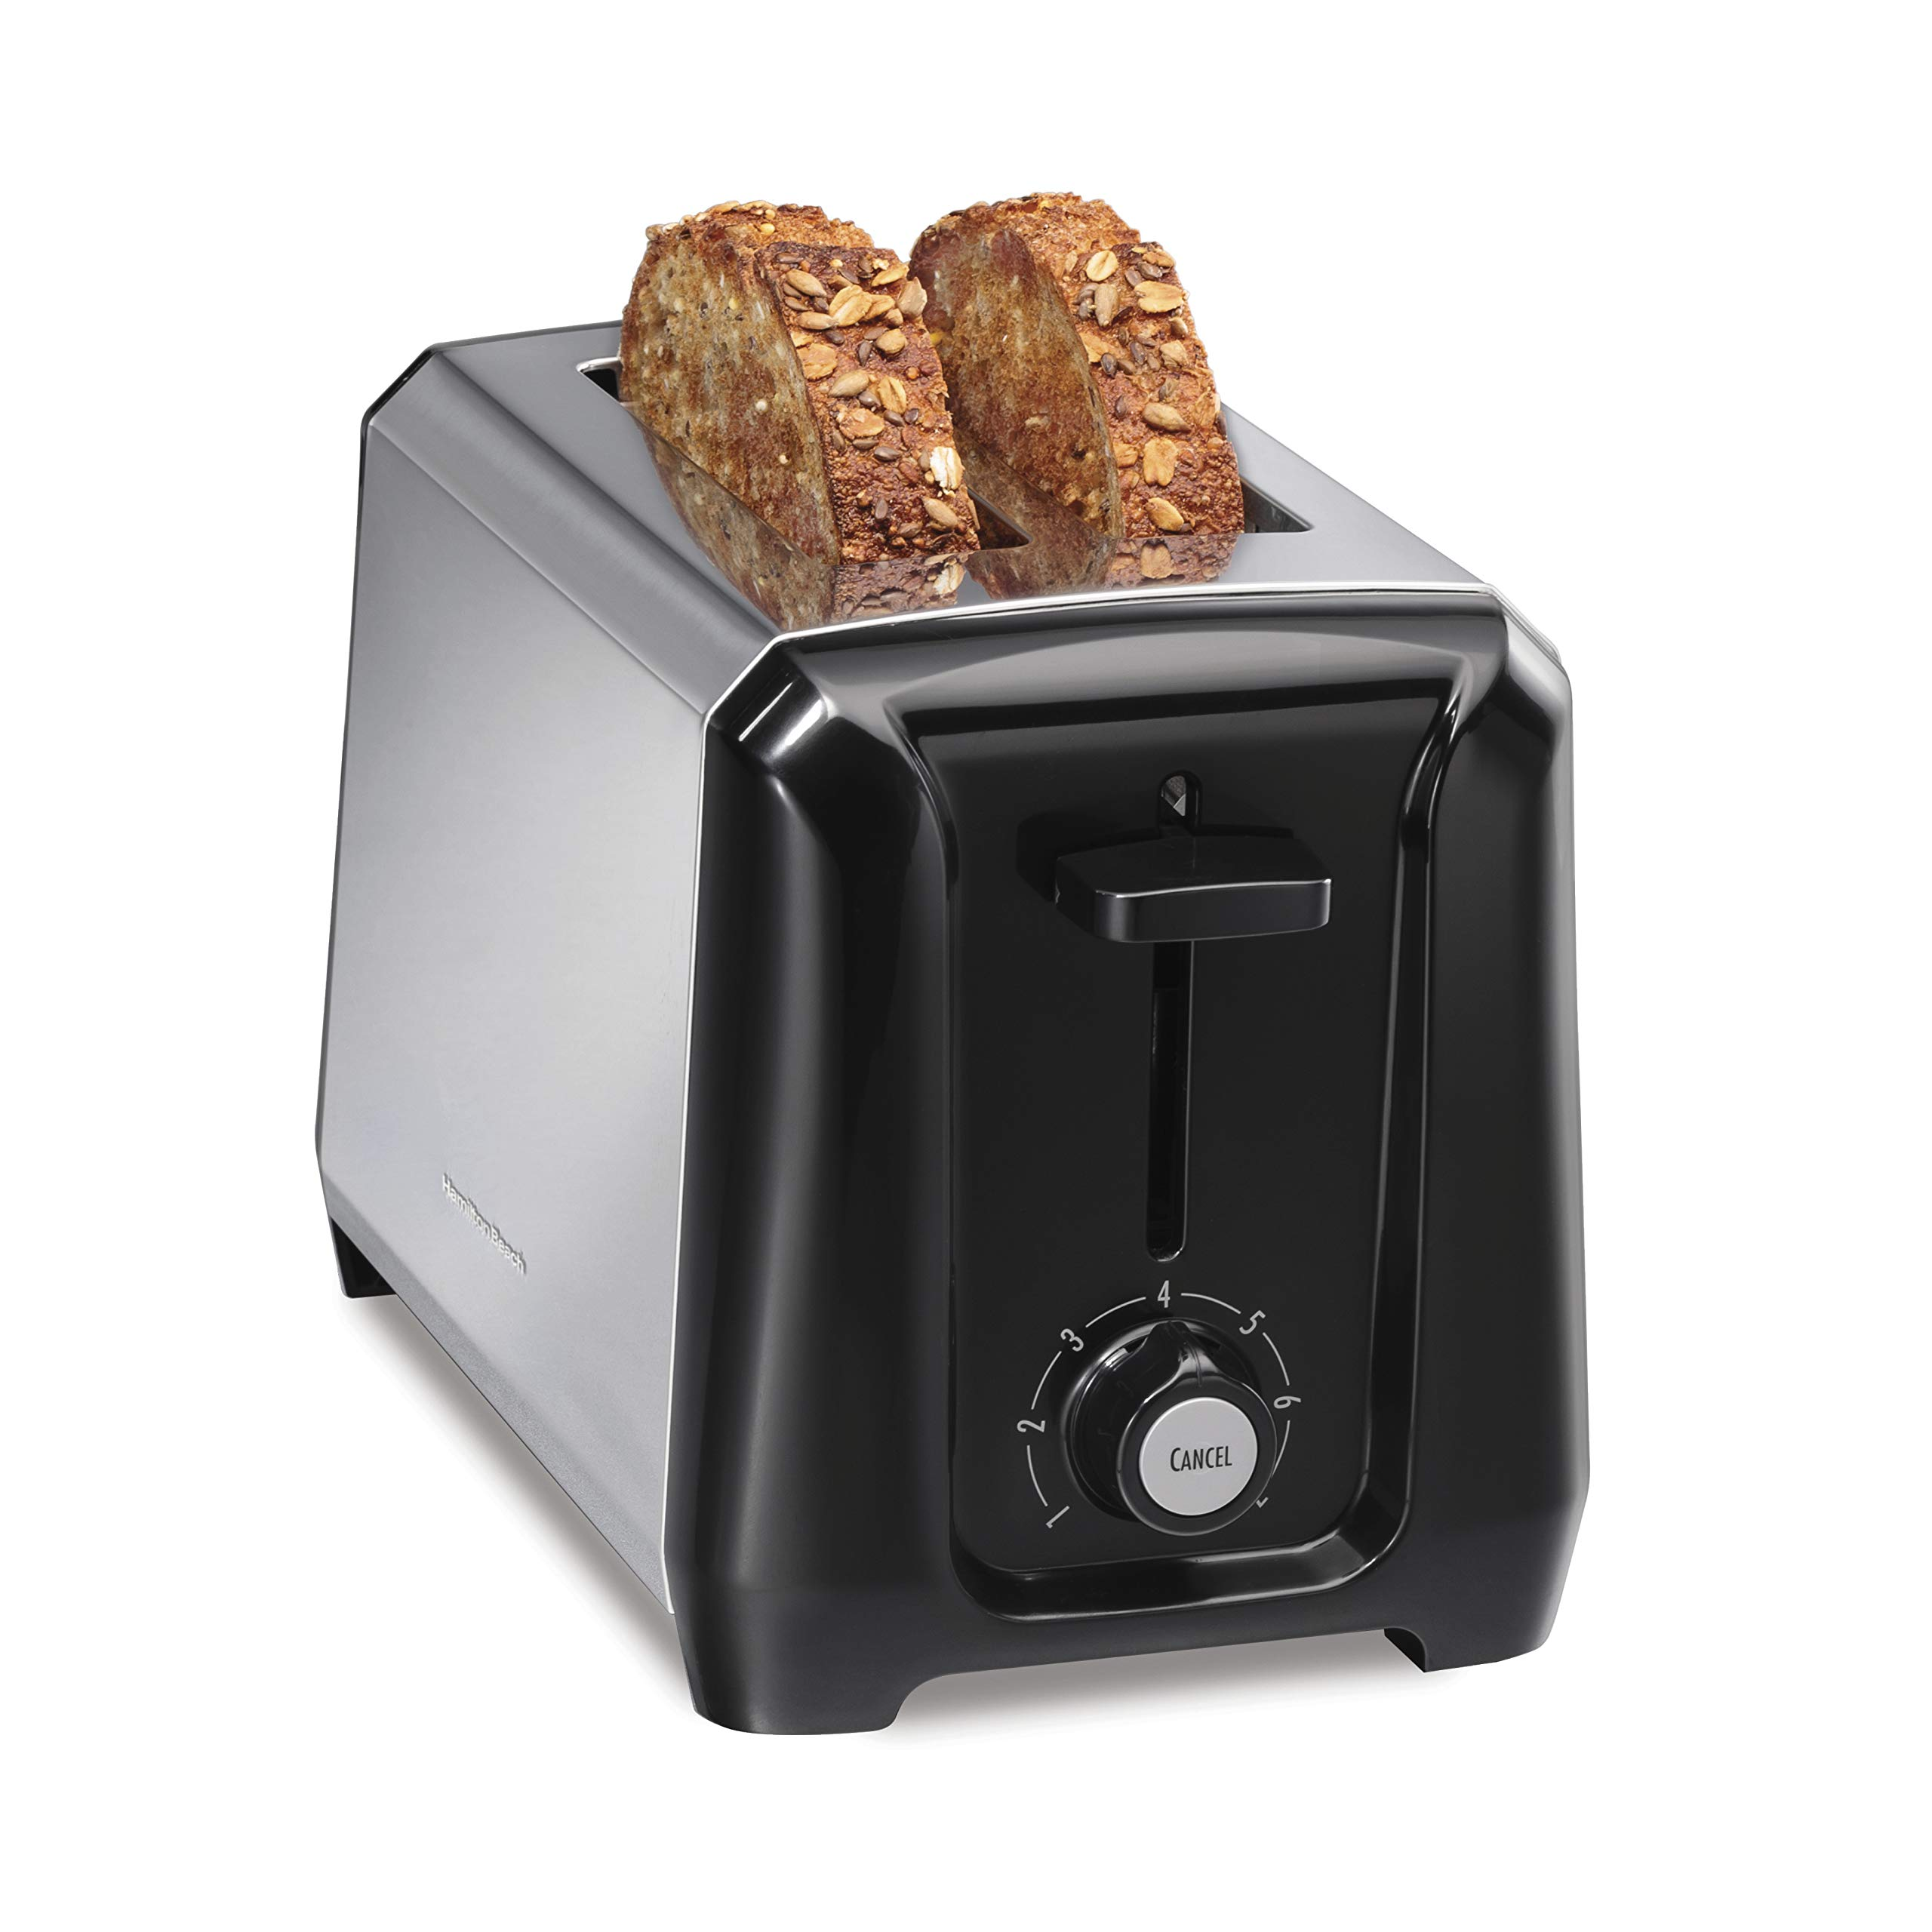 Hamilton Beach Stainless Steel 2-Slice Extra-Wide Toaster with Shade Selector, Toast Boost, Slide-Out Crumb Tray, Auto-Shutoff and Cancel Button (22671) by Hamilton Beach